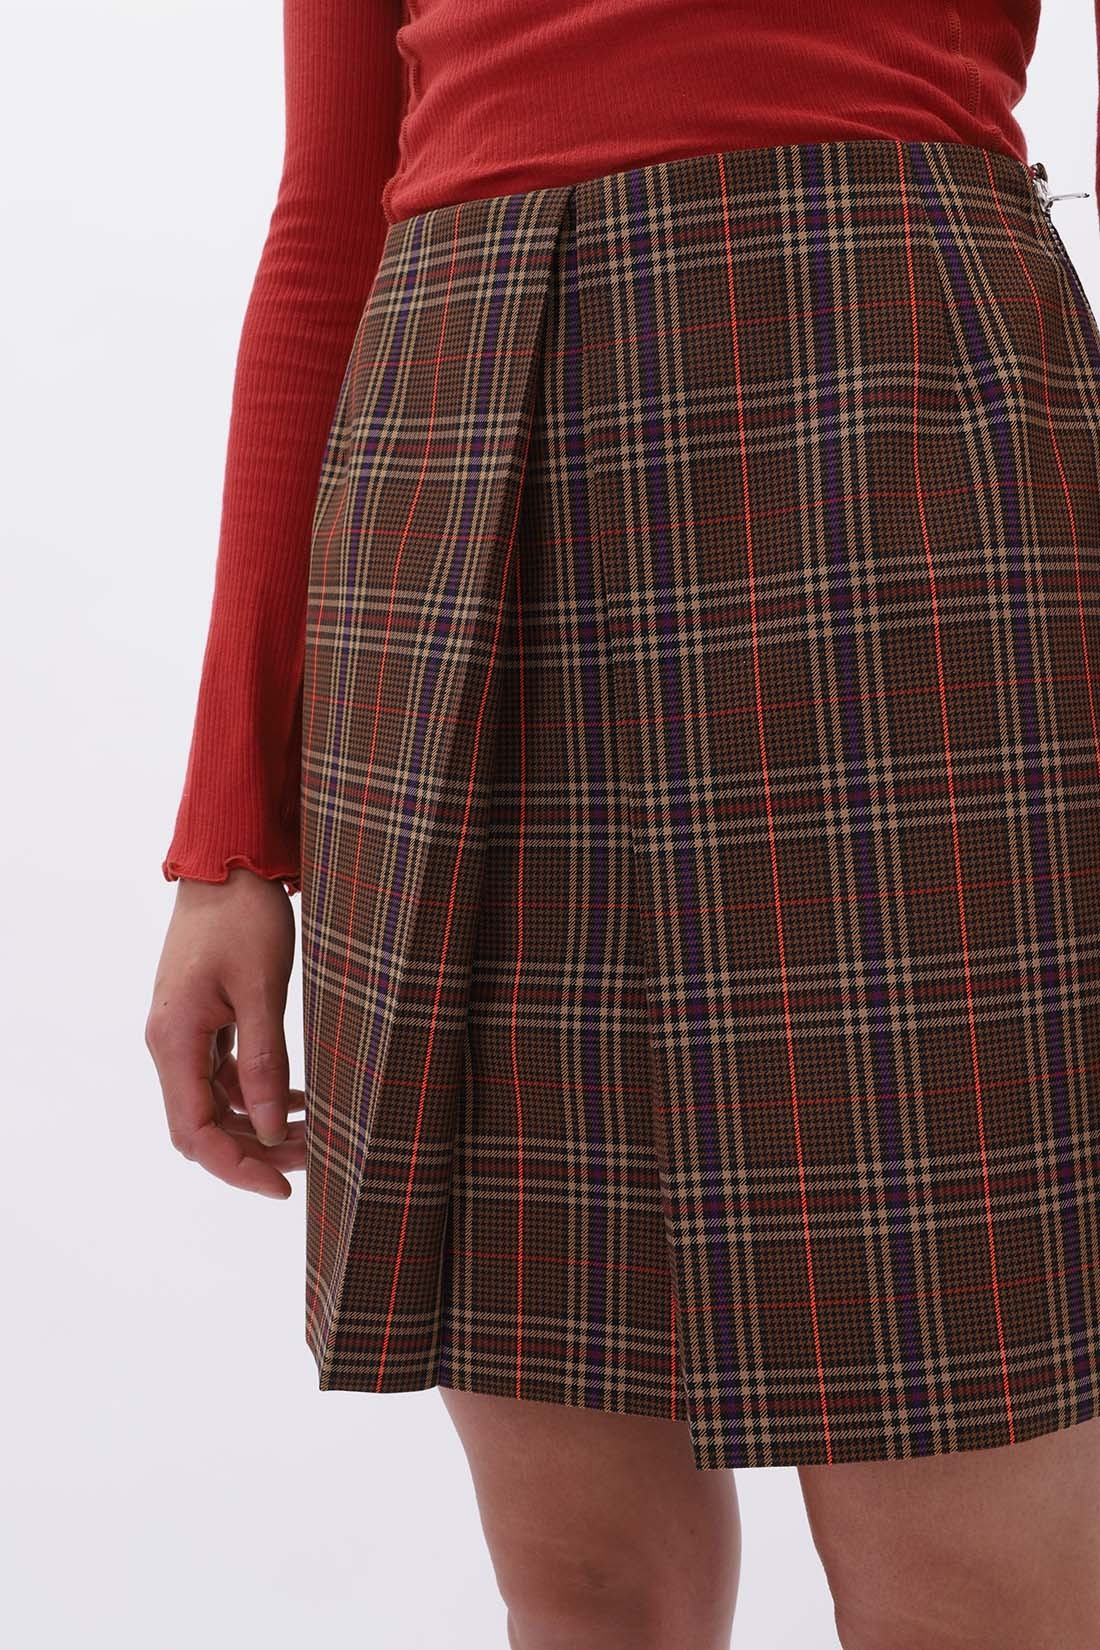 MM6 MAISON MARGIELA FOR WOMAN / Tartan skirt Brown